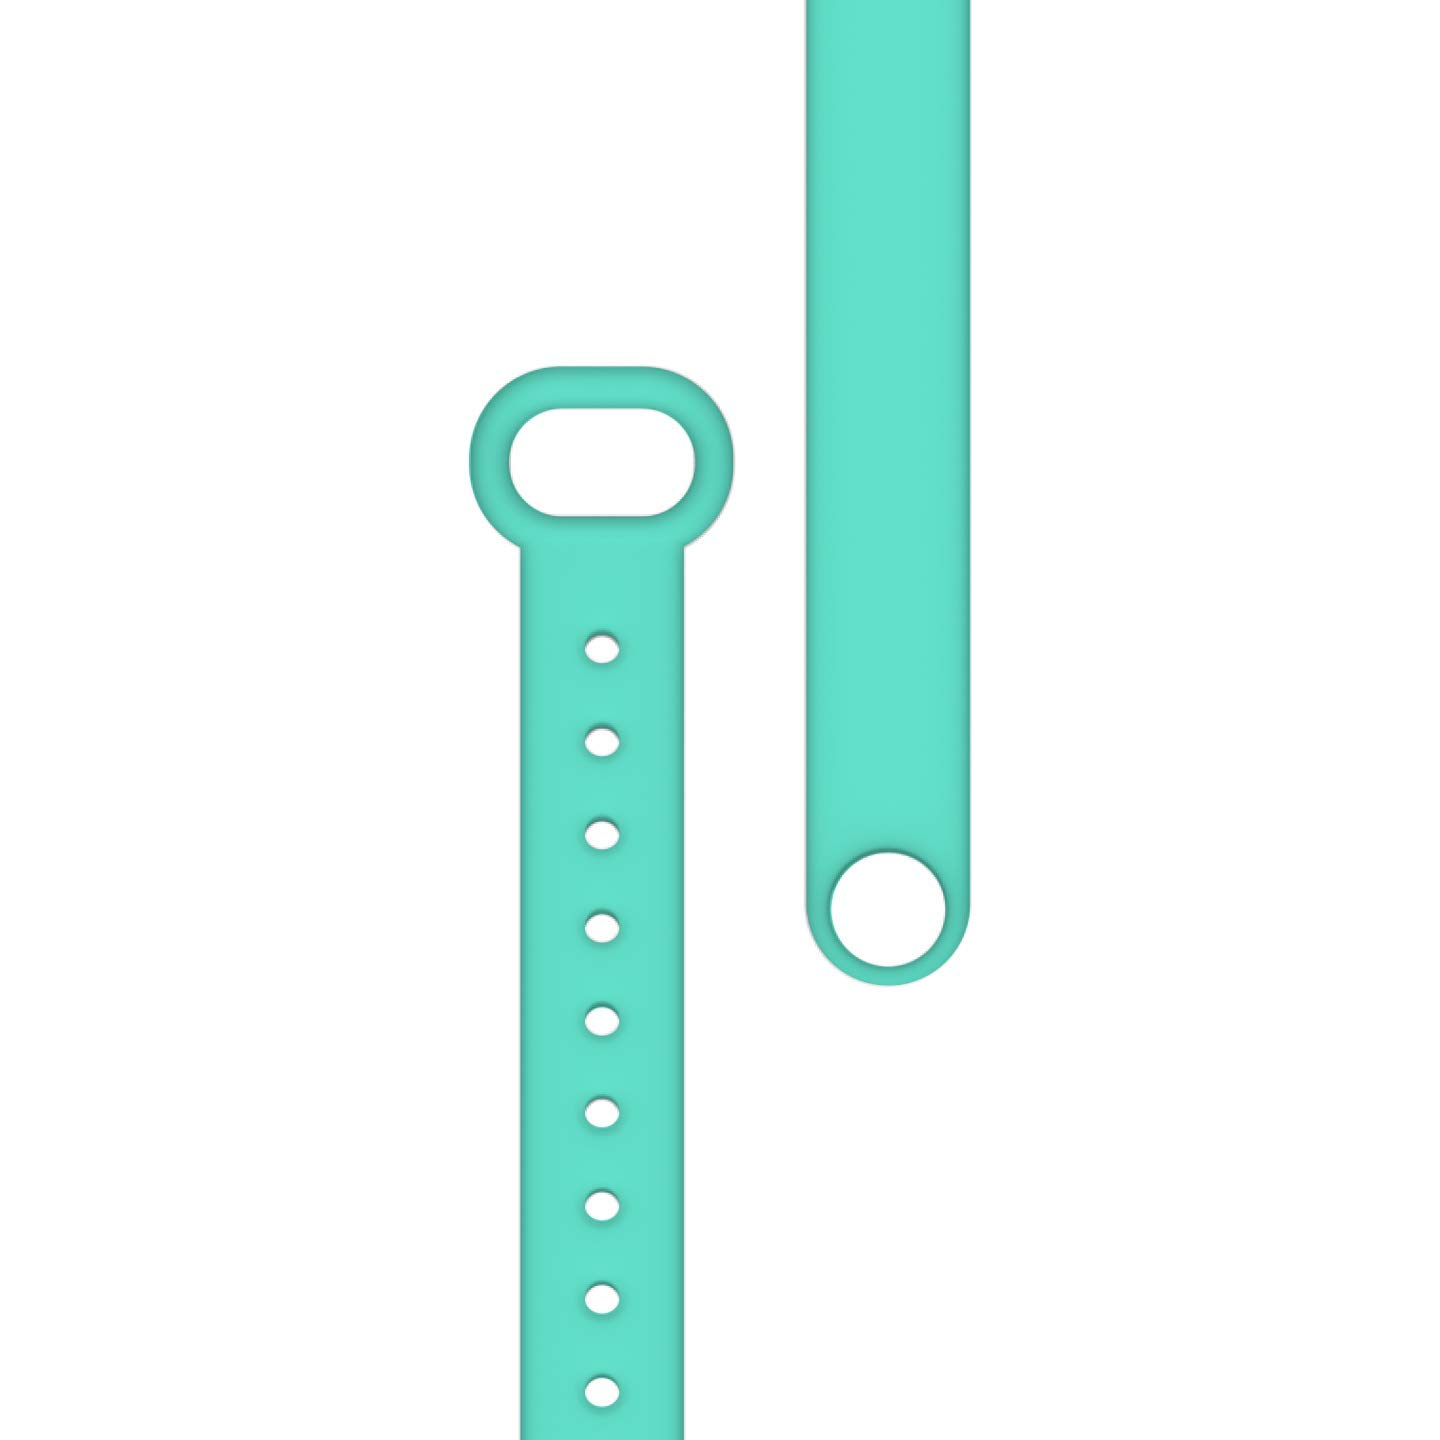 Bond Touch Sports Band - Emerald Green - Accessory for Your Bond Touch